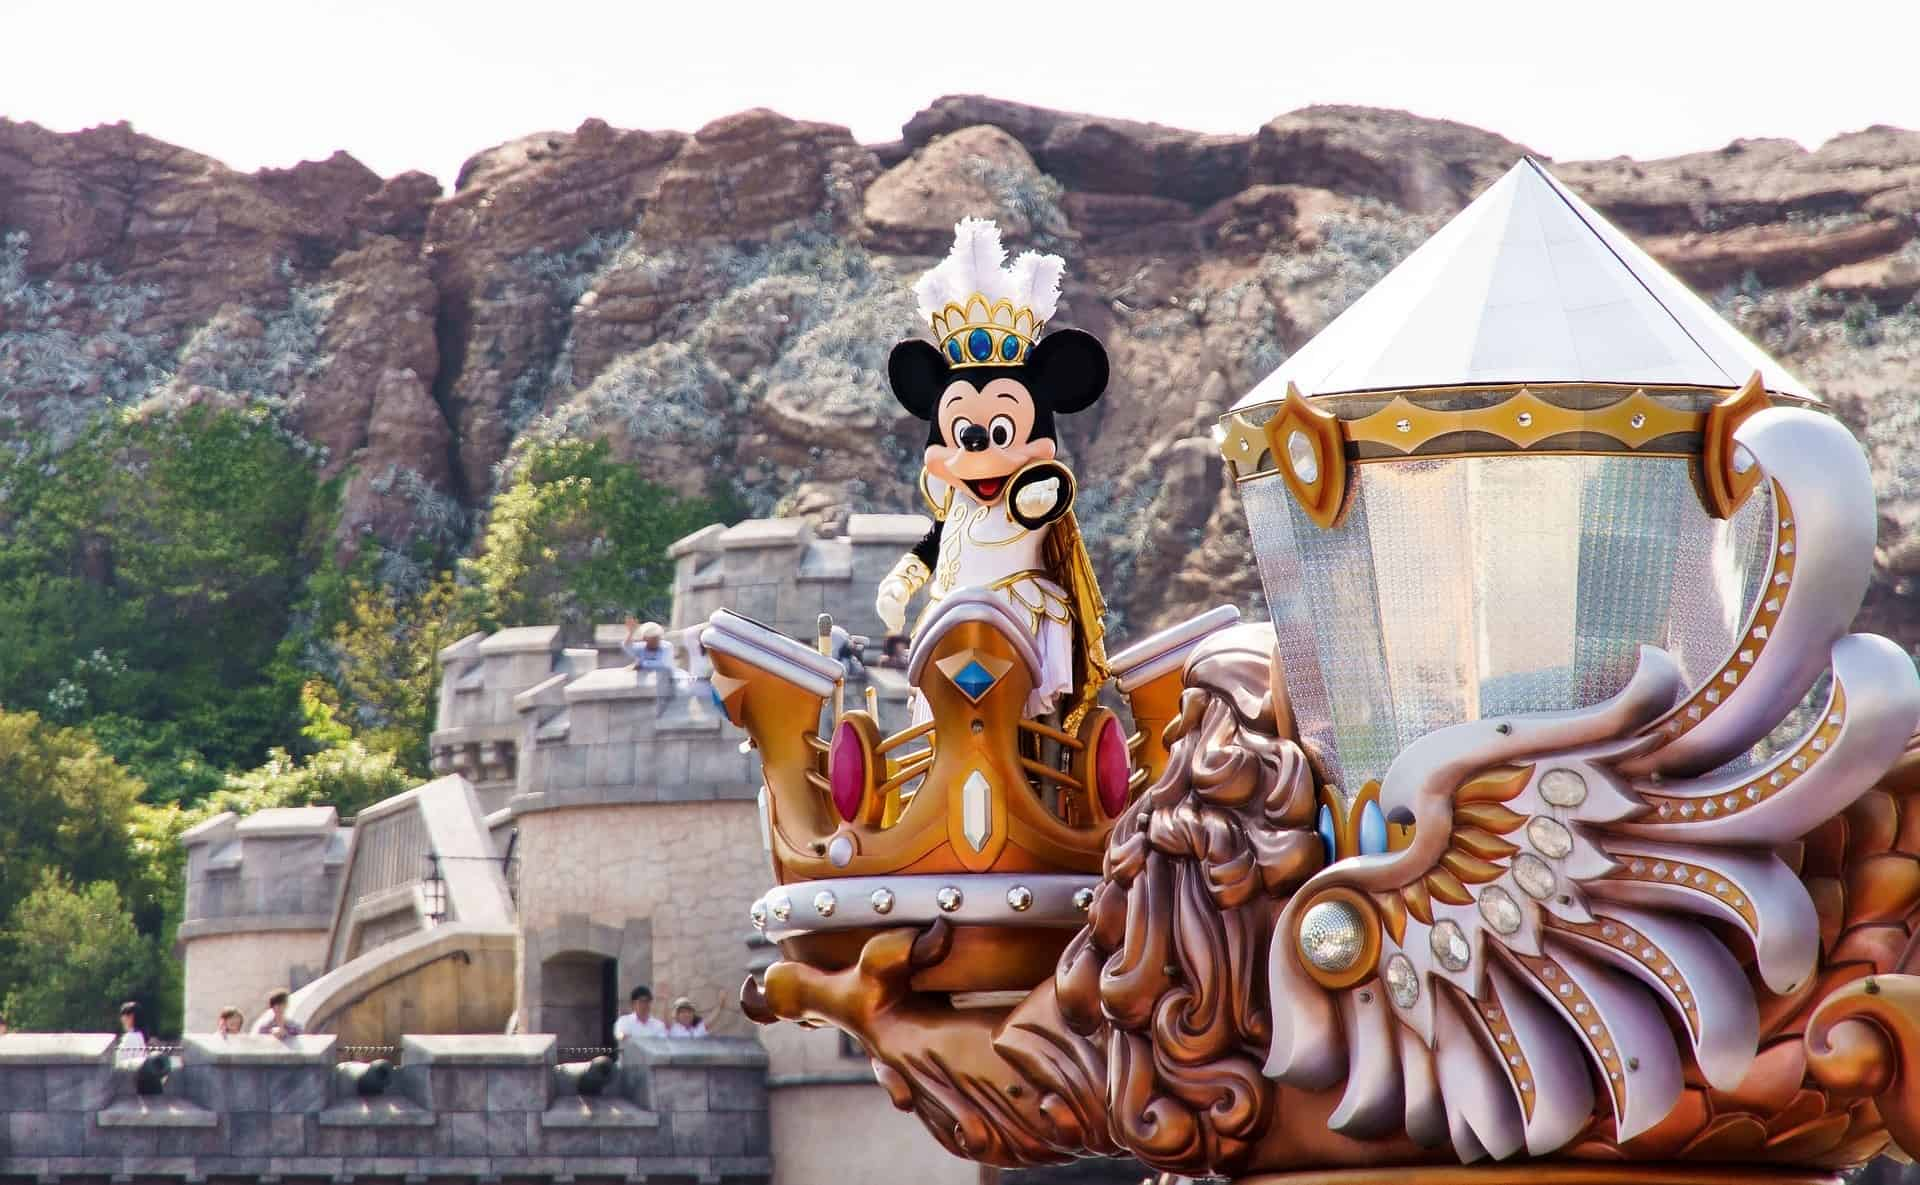 Mickey Mouse in Tokyo Disneyland